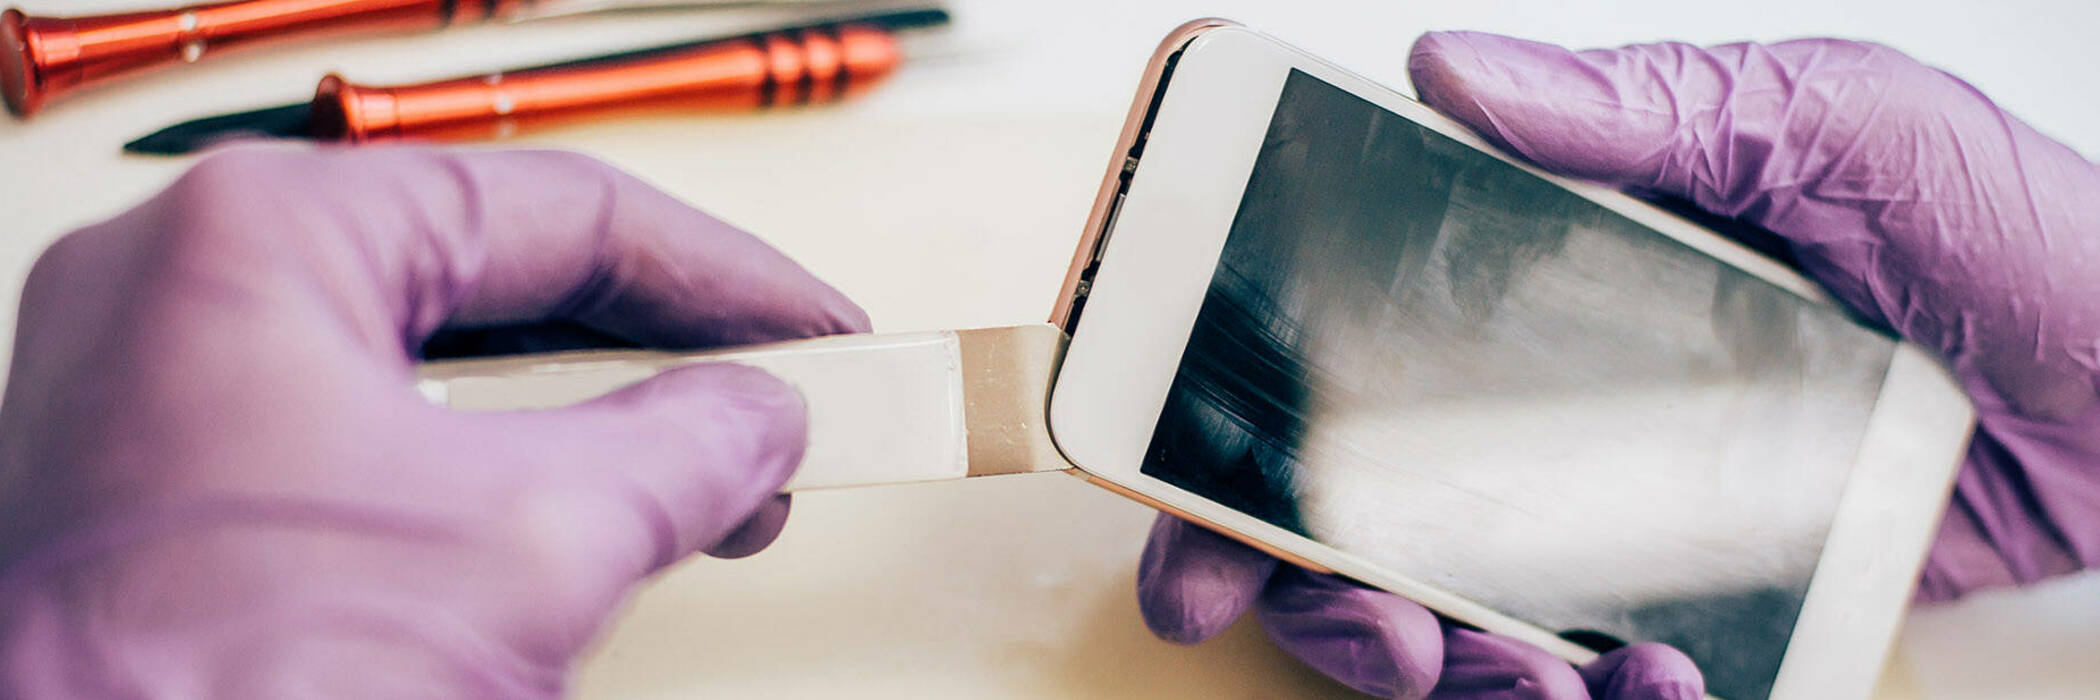 Smartphone being repaired